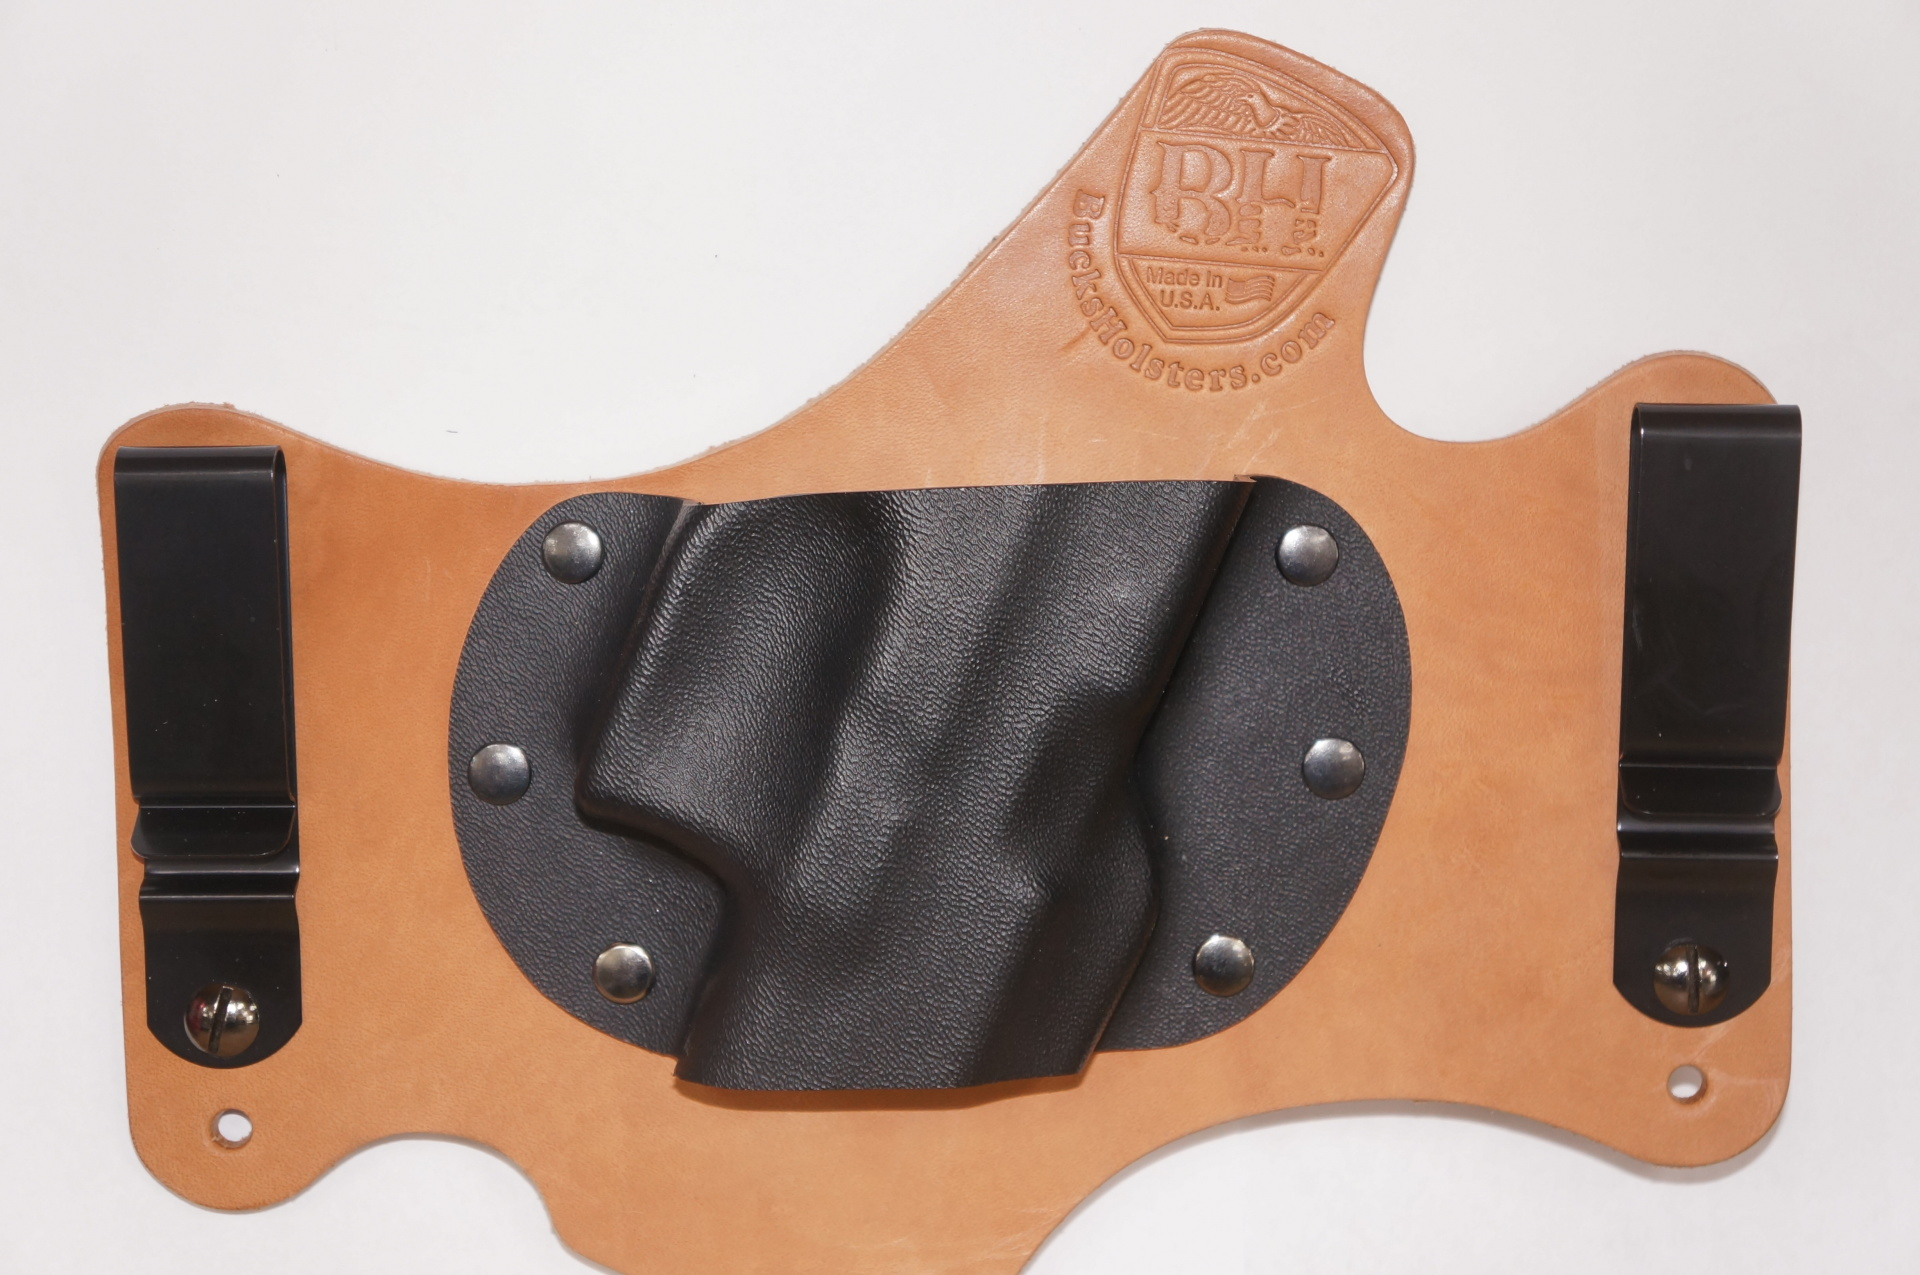 IWB holsters, best holster, holsters for sale, tuckable holsters, premium leather holster